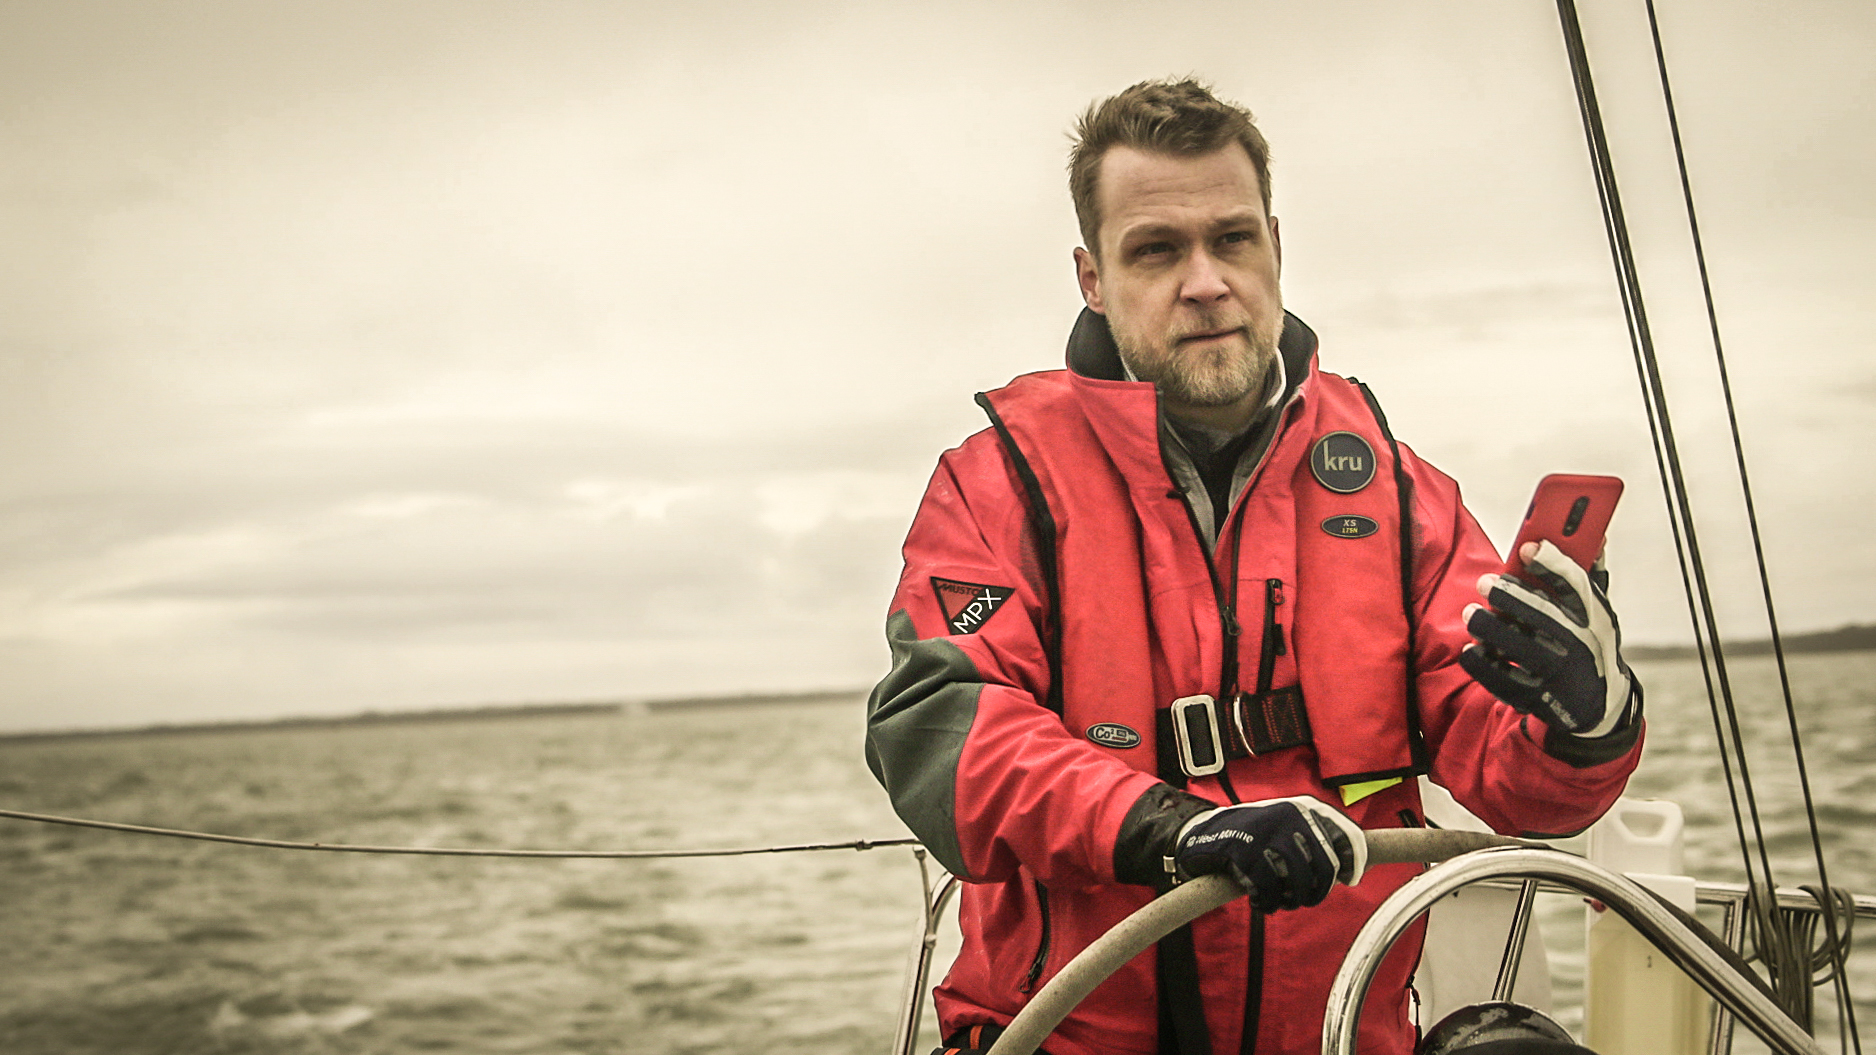 Jelte Liebrand steering a boat, holding a phone (using savvy navvy).